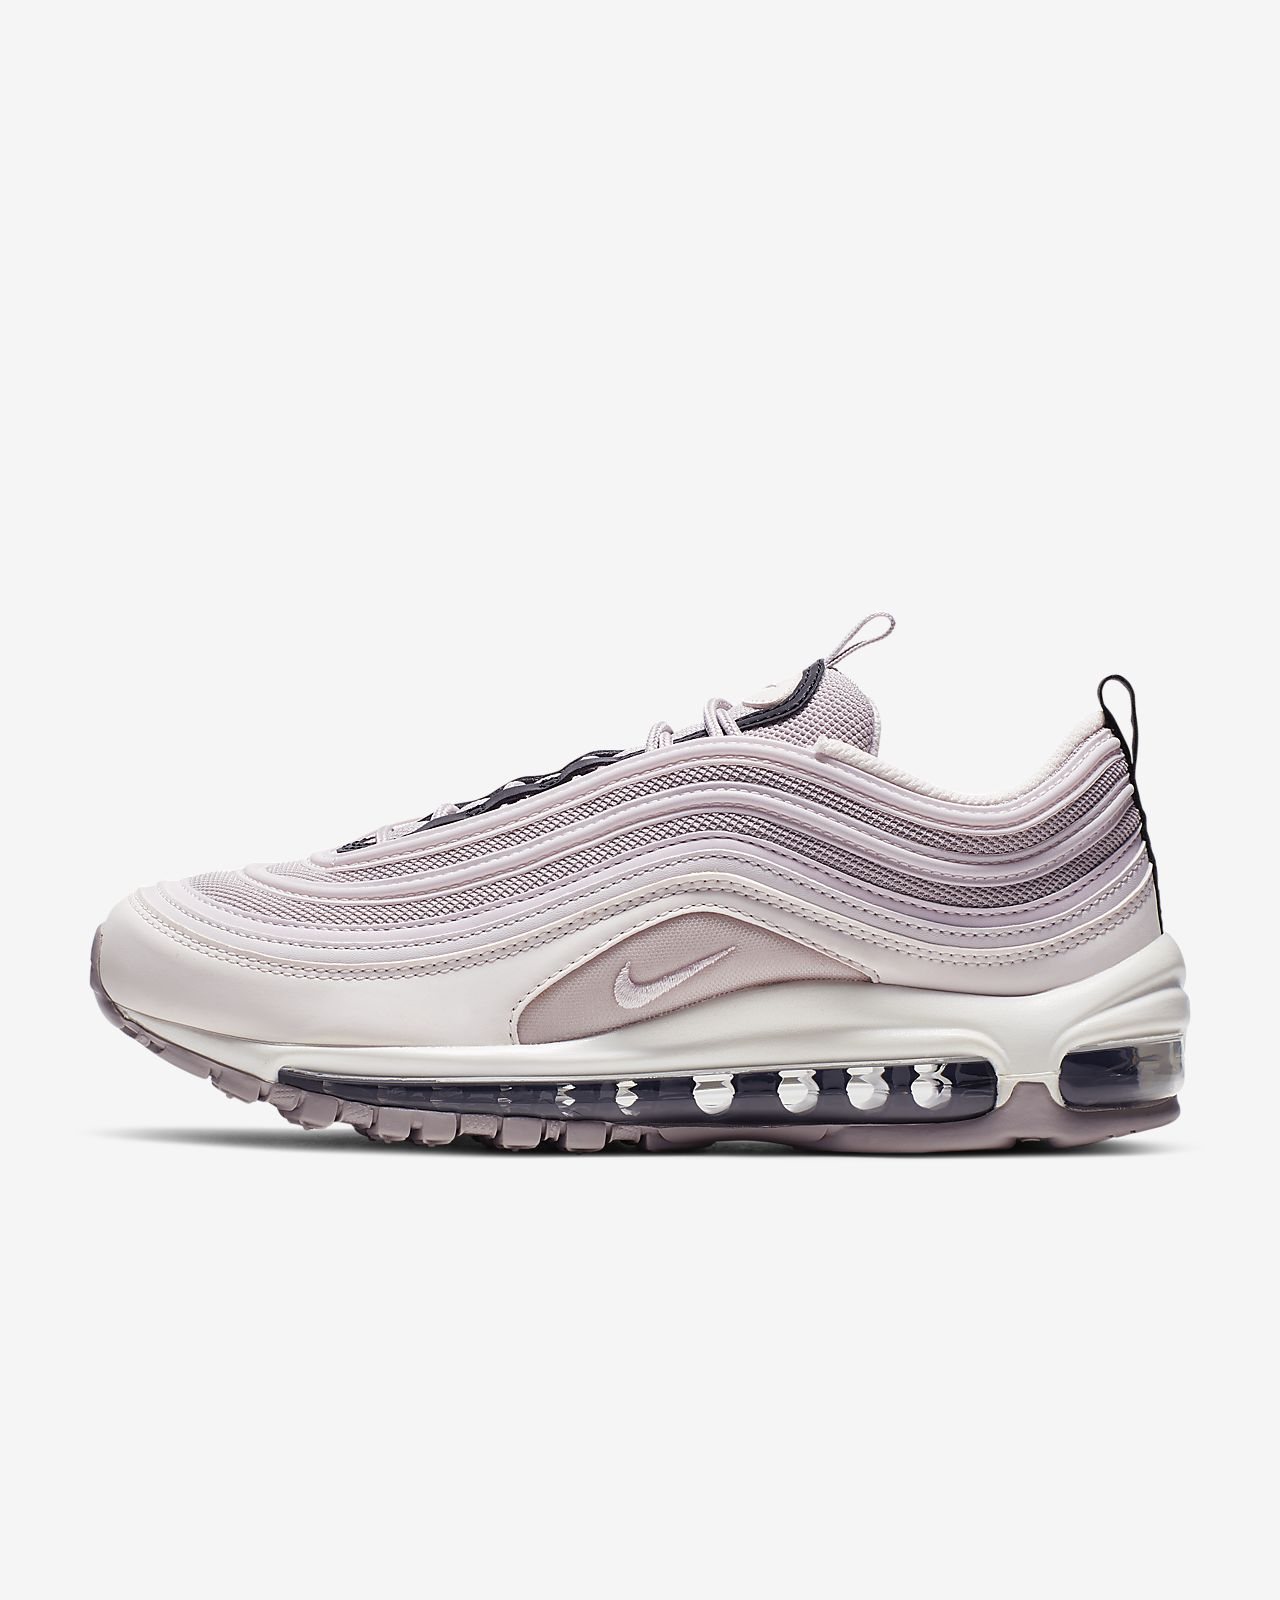 Nike Air Max 97 damesko